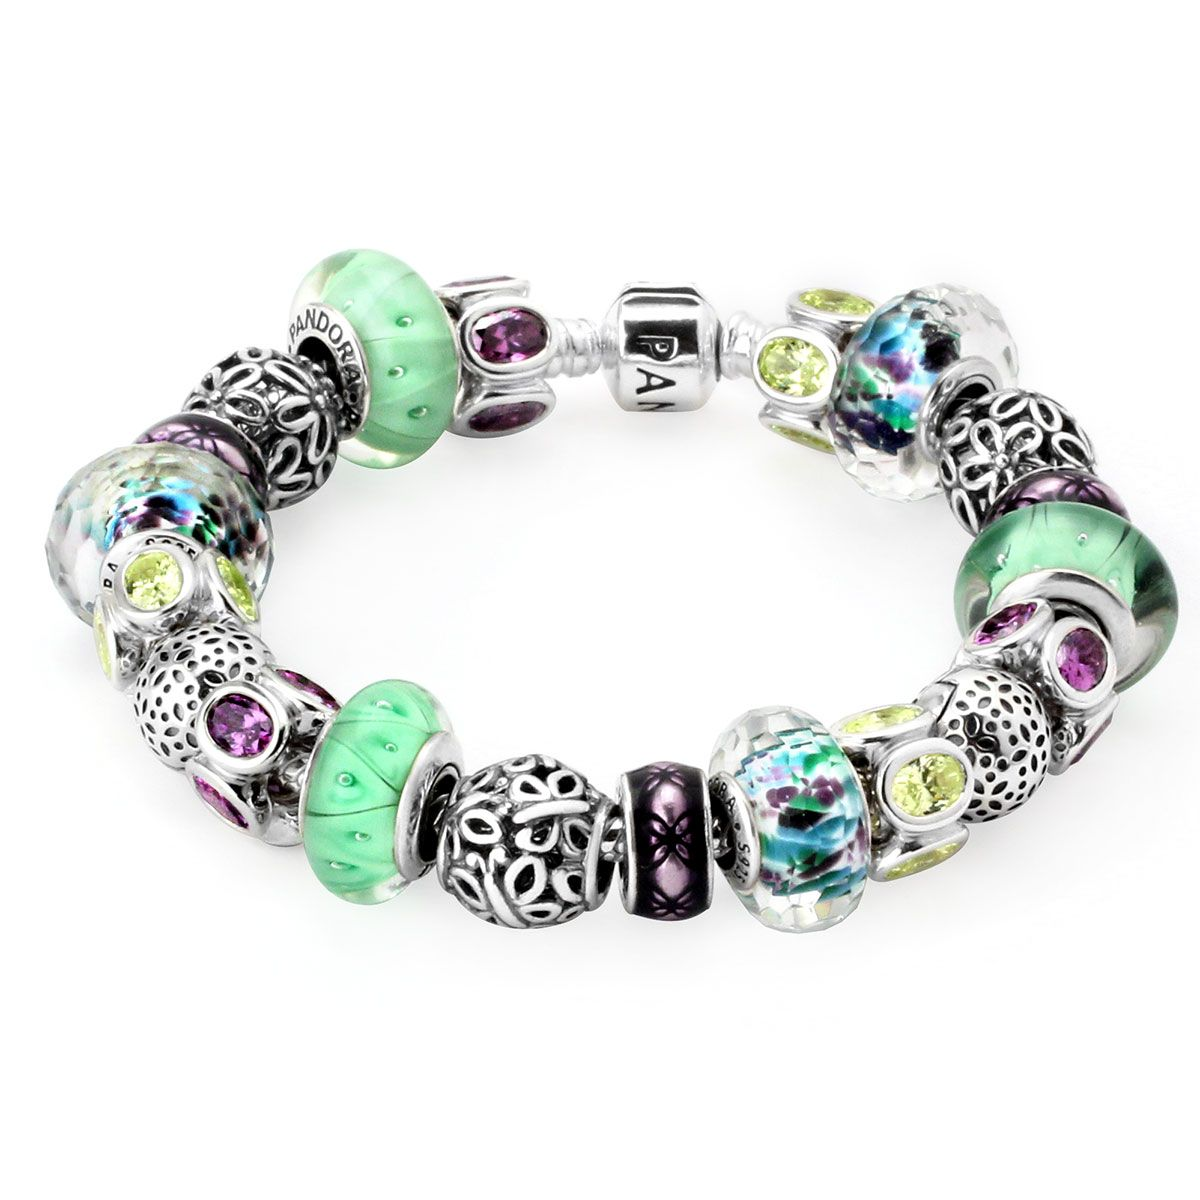 Pandora Bracelet With Lovely Mix Of Pale Green And Purple Charms   Goldcasters